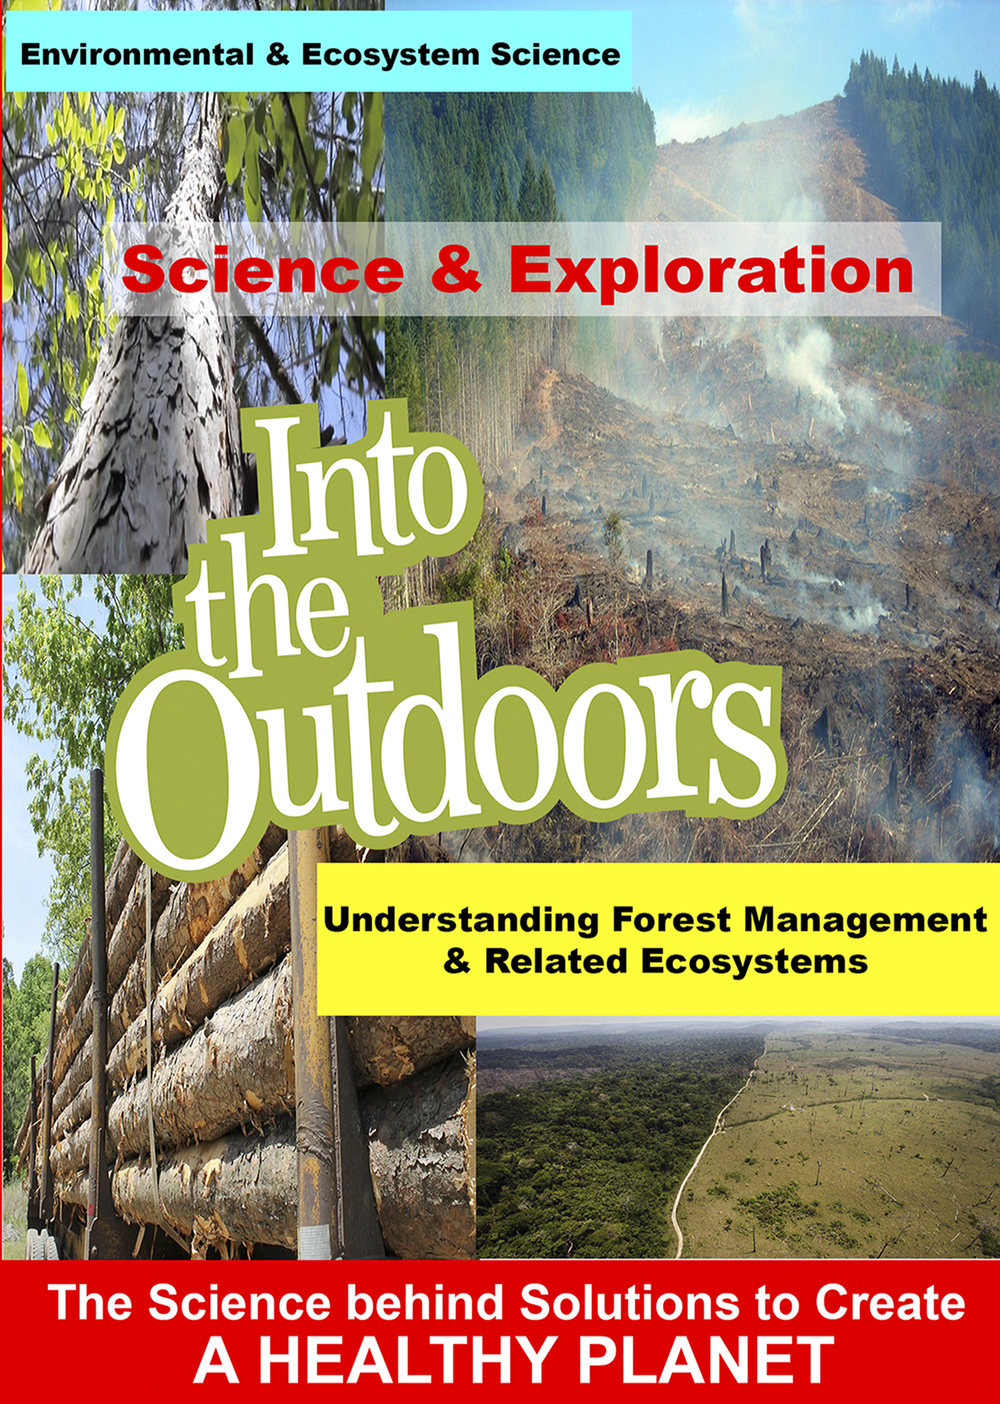 K4990 - Understanding Forest Management & Related Ecosystems